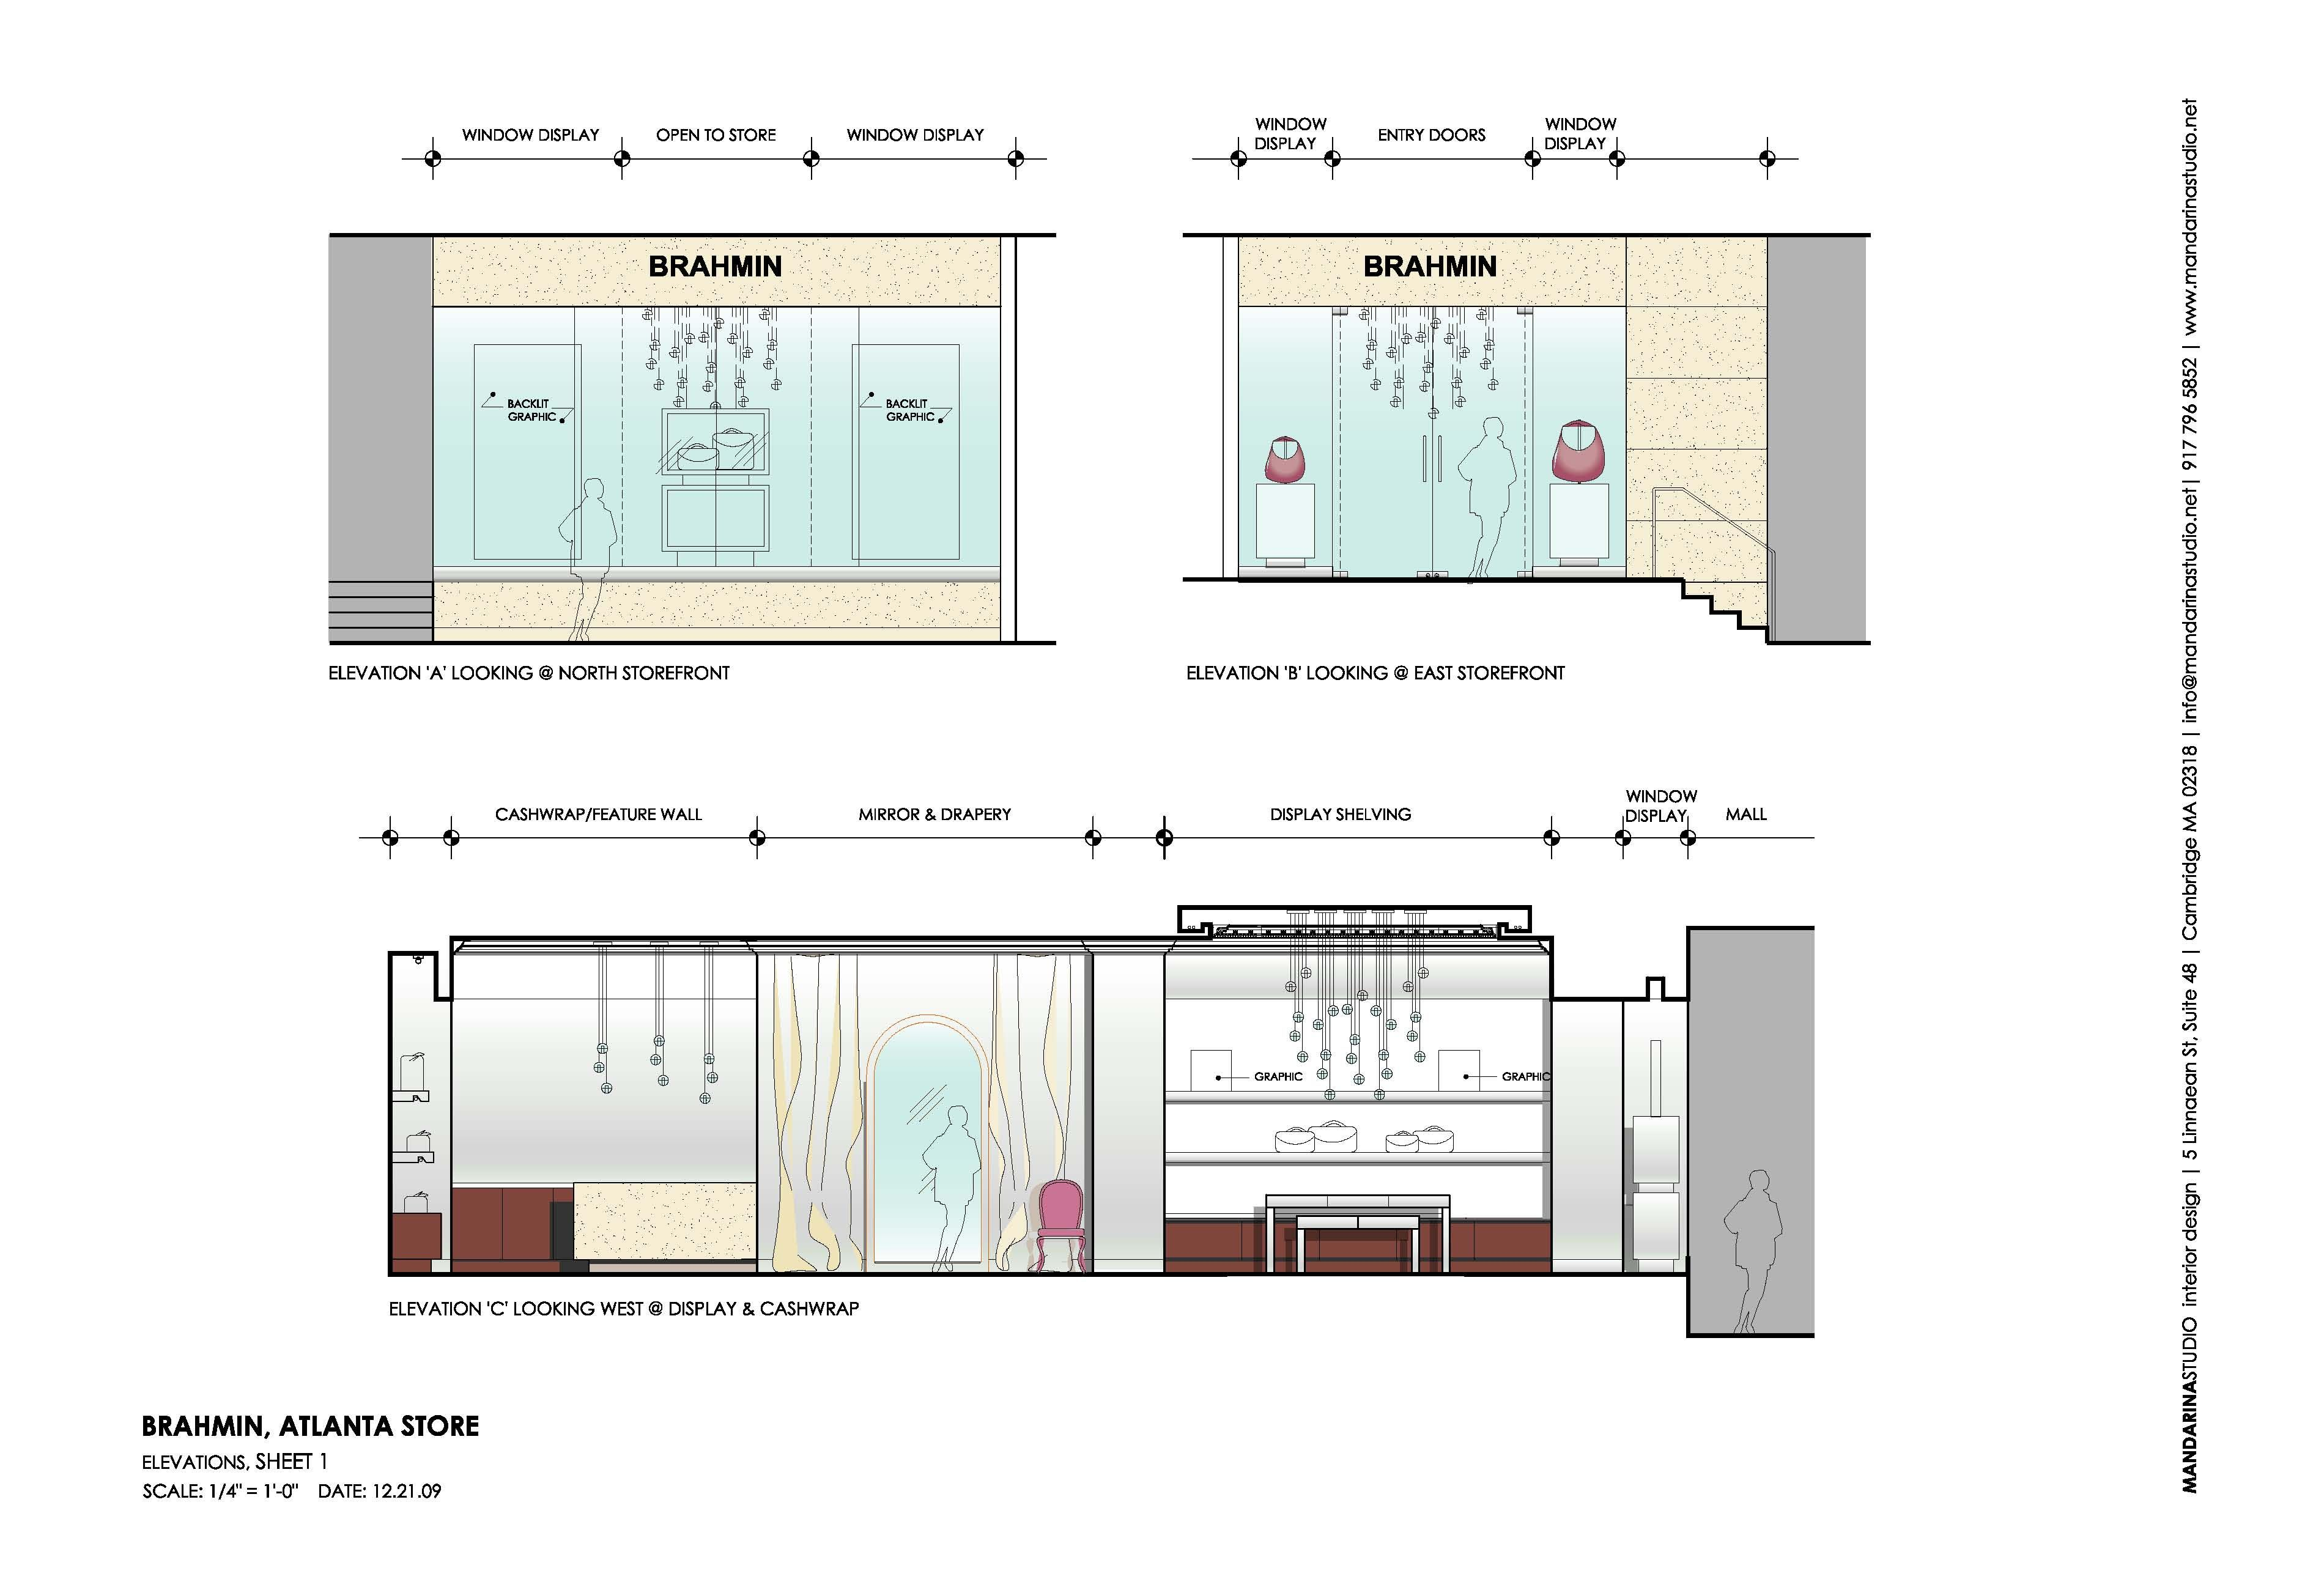 BRAHMIN Atlanta Design Elevations Sheet 1